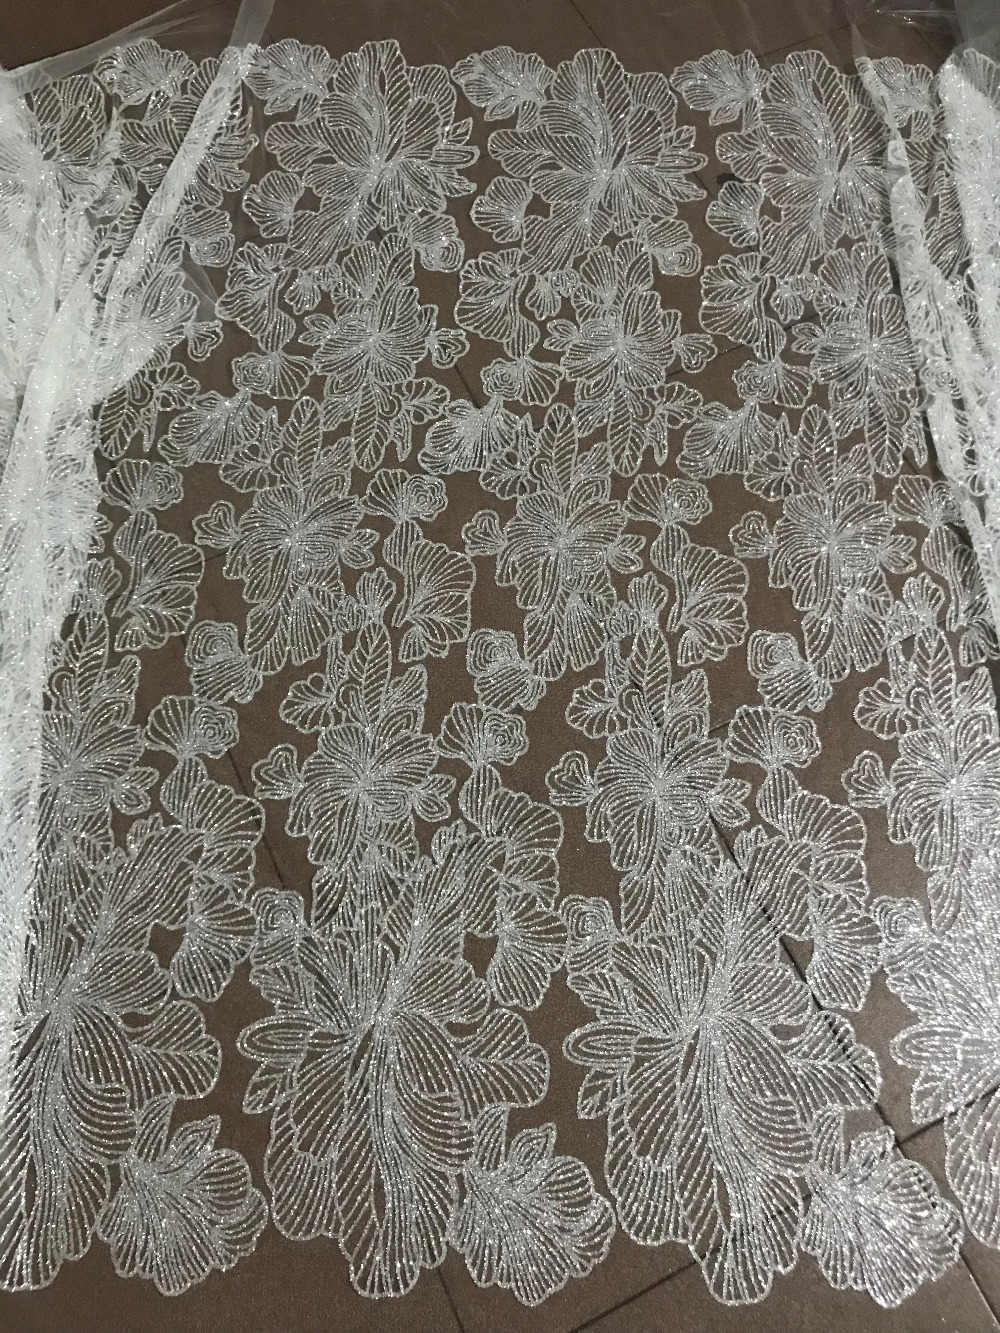 Hot selling Sat 10 2716 glued glitter sequins lace fabric African French net tulle Lace Fabric